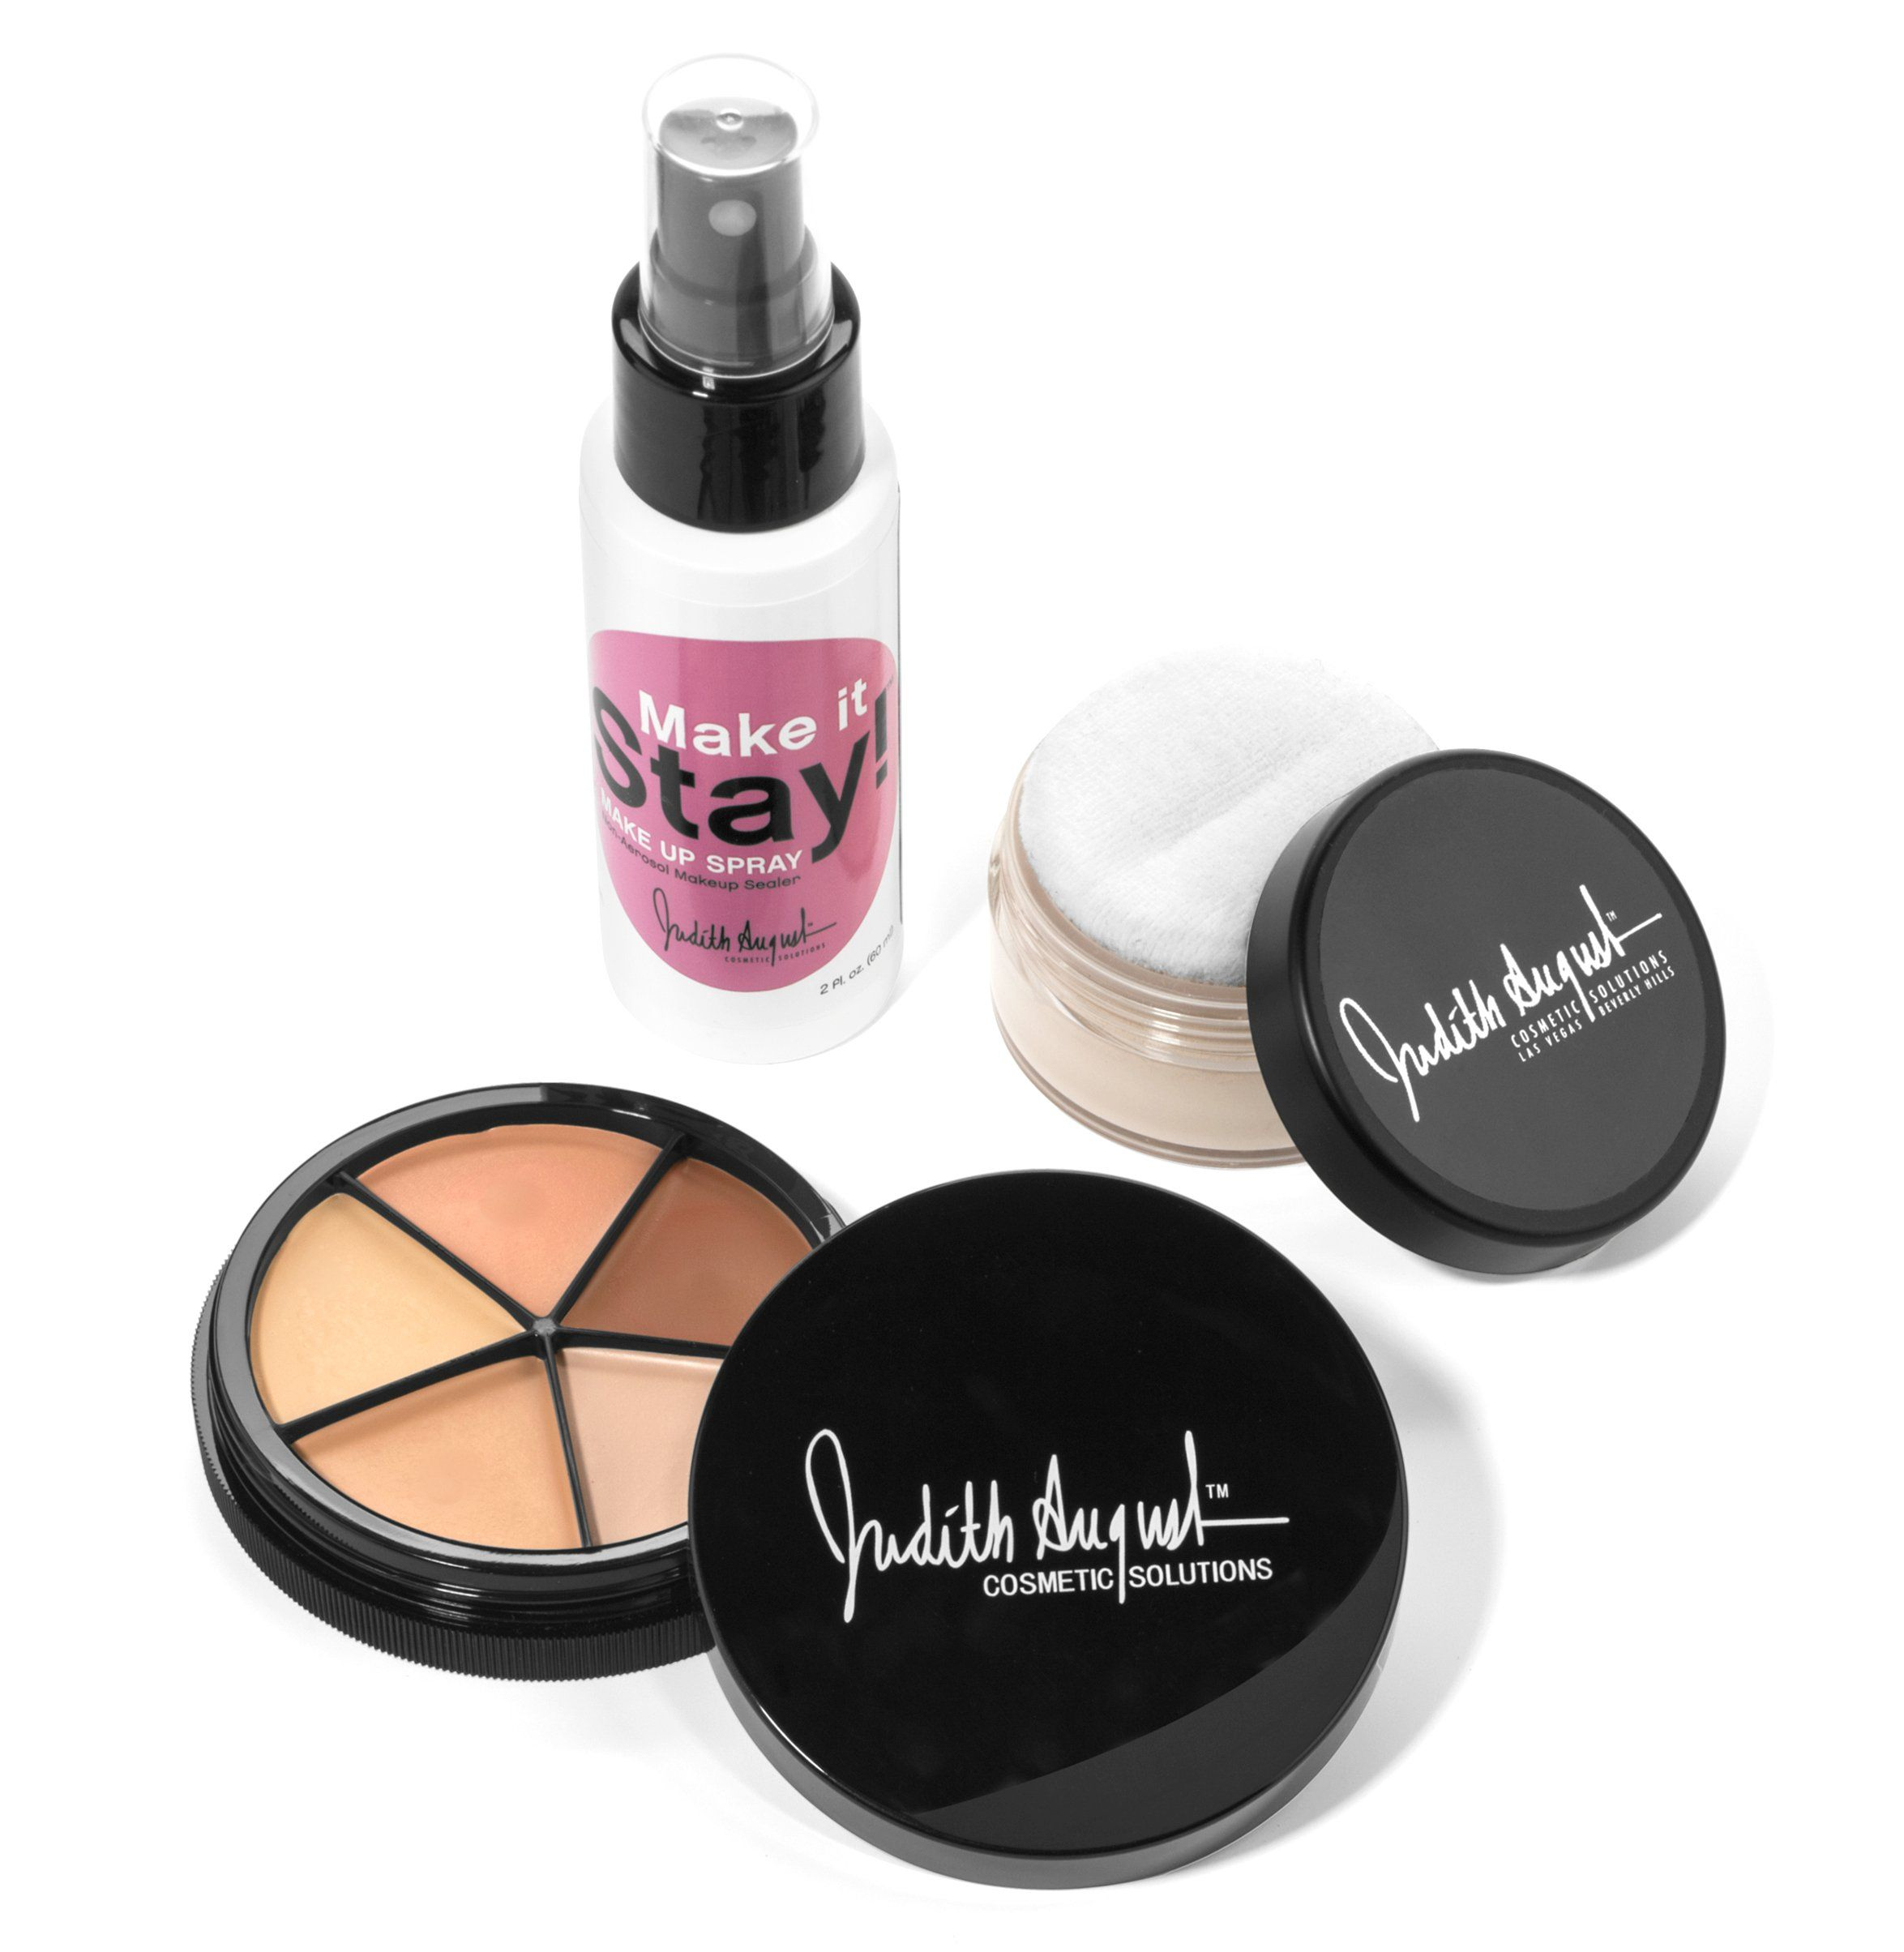 Tattoo Cover Up Concealer Makeup Kit. FULL COVERAGE